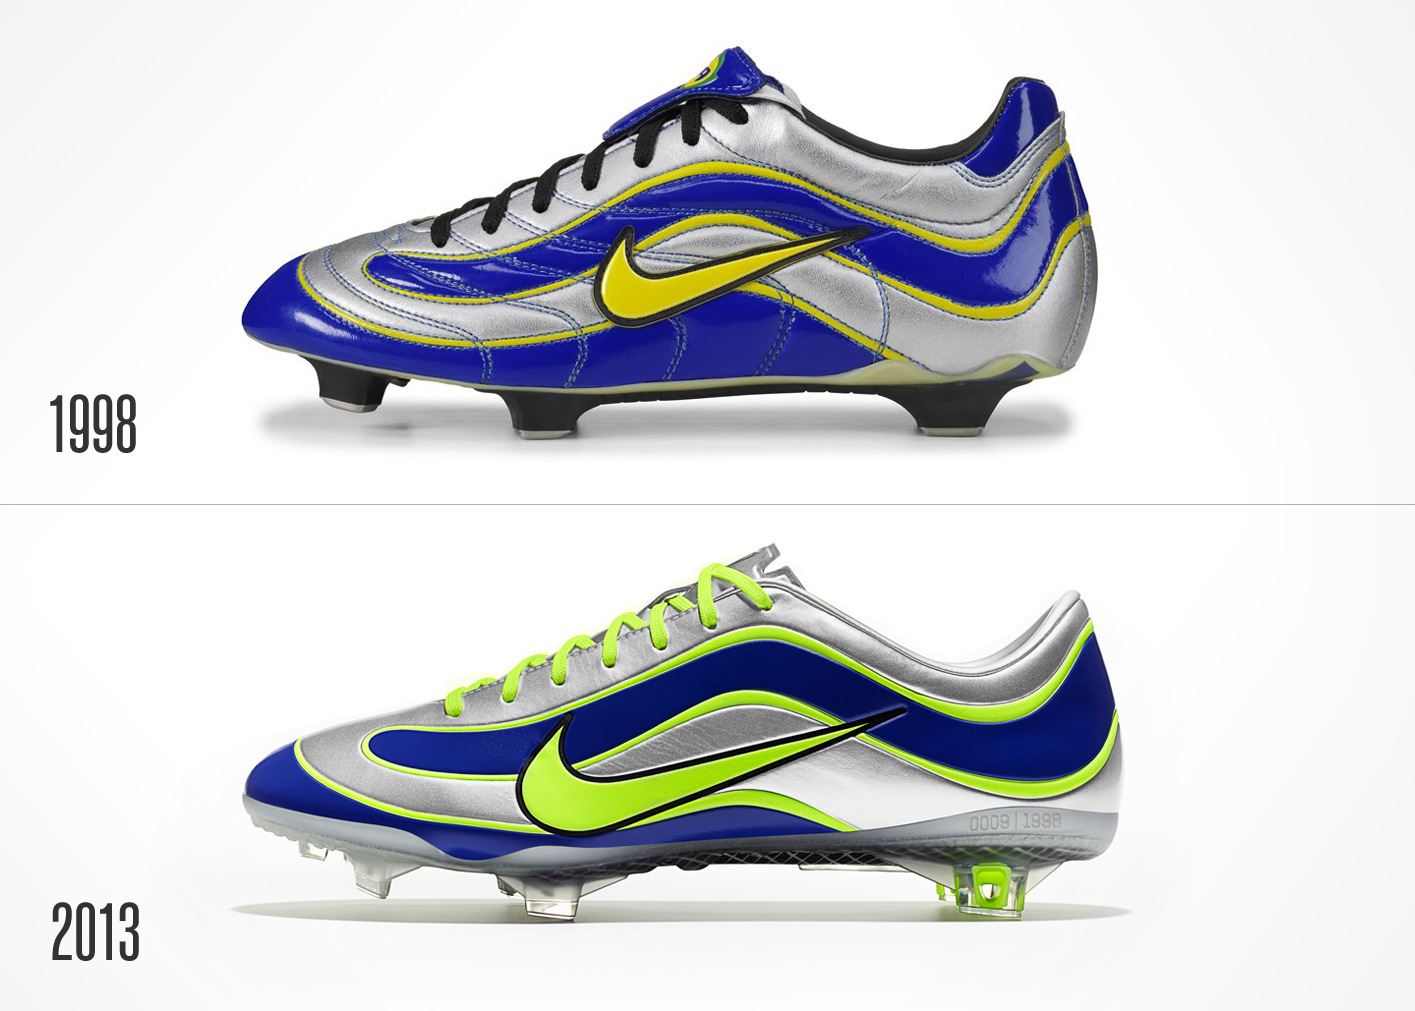 the phenomenon of football shoes Meet the new phenomenon at the end of a fortnight she will take the comte de n and she will save up during the winter, and next summer you will begin over again  all the football boots/shoes he has worn including new soccer cleats nike mercurial vapor xi 2017 2018 i got neymar's, 000 golden football buy wholesale white gold.